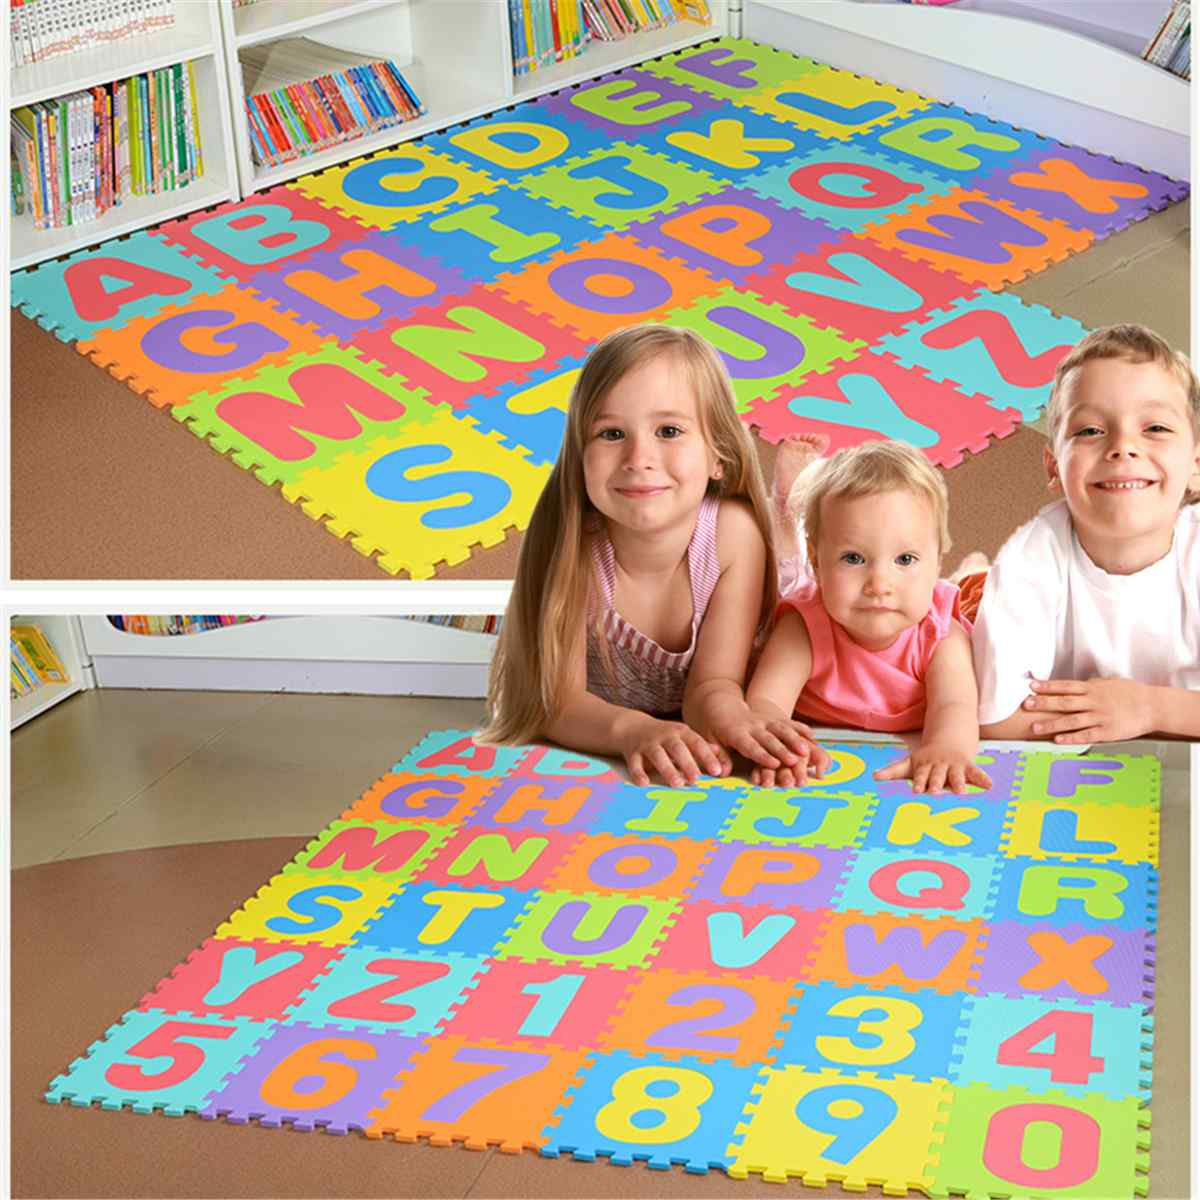 36 Pieces Puzzle Childrens Mat Thickened Tapete Baby Play Mat Infant Baby Room Letter Crawling Pad Folding Mat Baby Carpet36 Pieces Puzzle Childrens Mat Thickened Tapete Baby Play Mat Infant Baby Room Letter Crawling Pad Folding Mat Baby Carpet